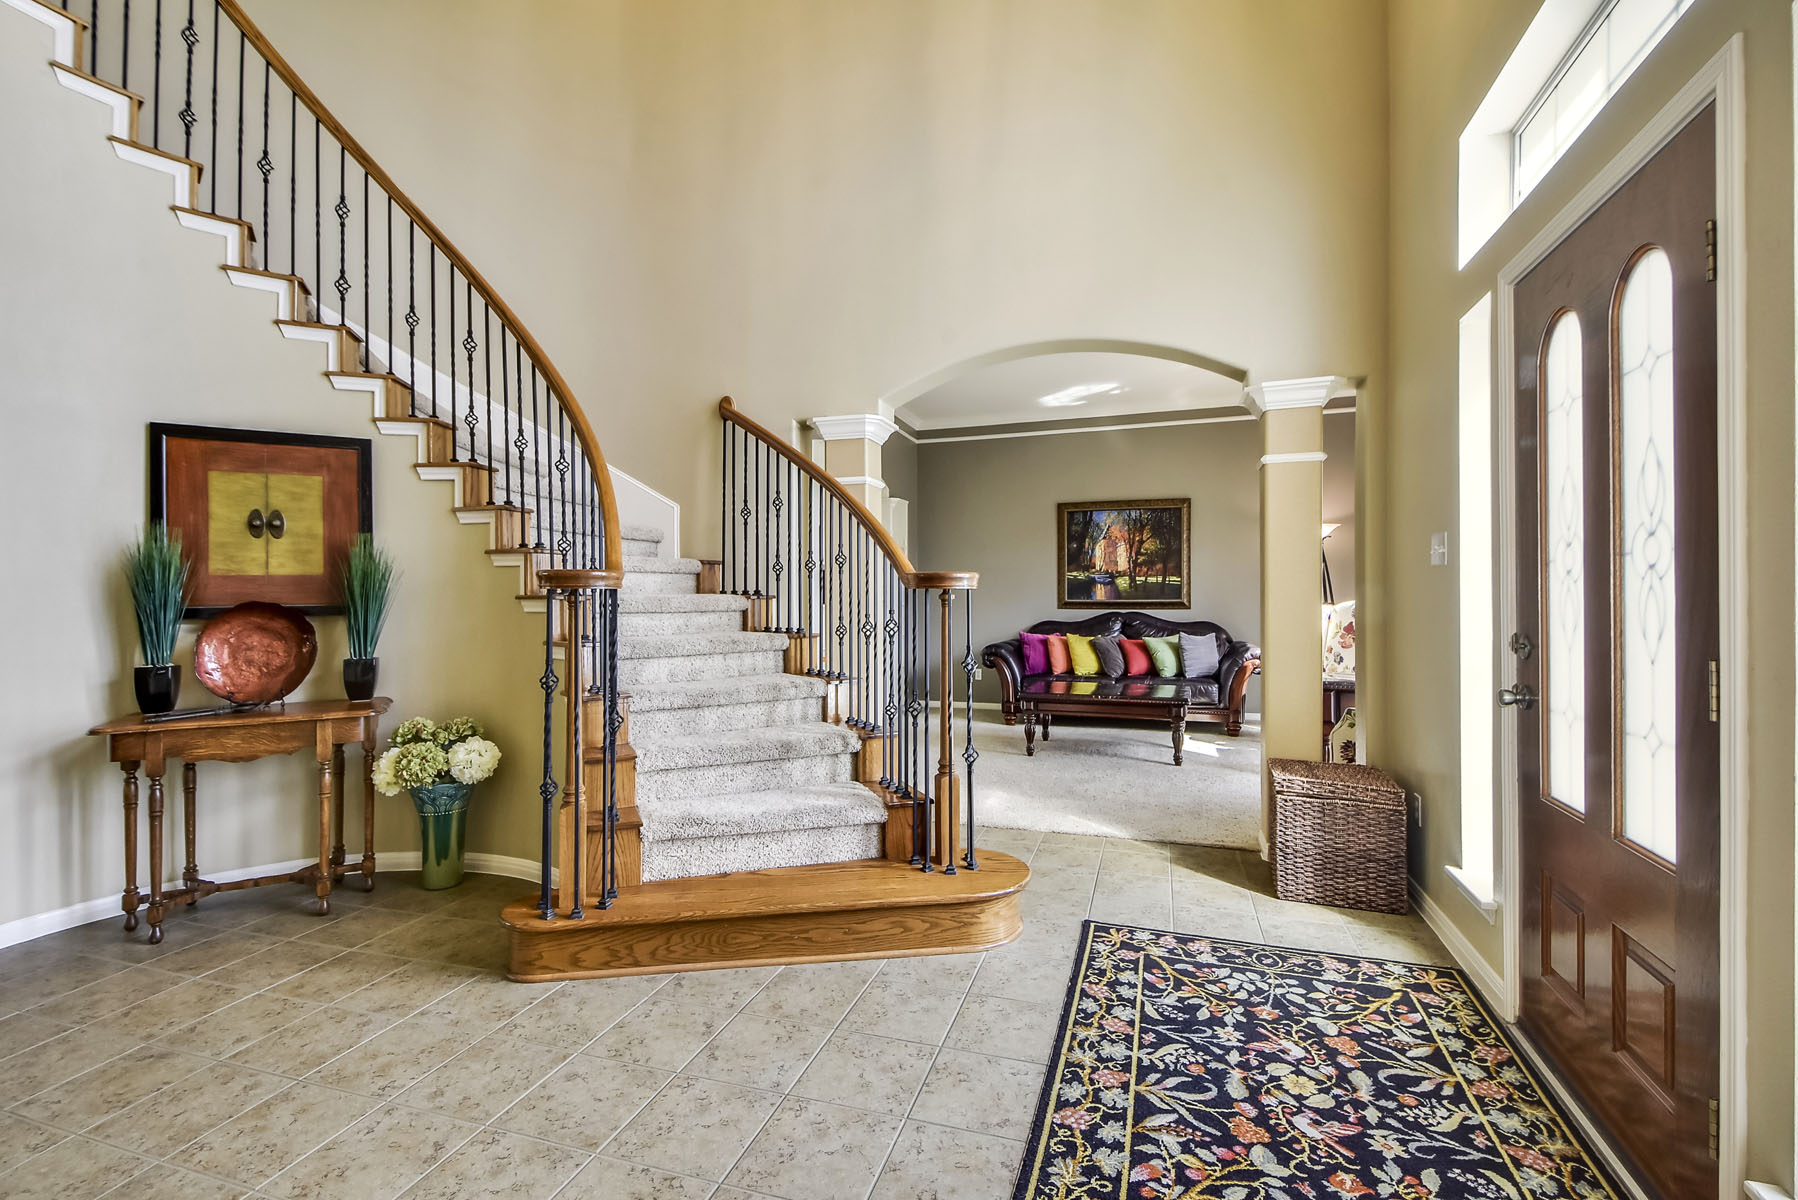 Additional photo for property listing at Indoor and Outdoor Entertainment Oasis 2504 Trailing Vine WY Round Rock, Texas 78665 Estados Unidos